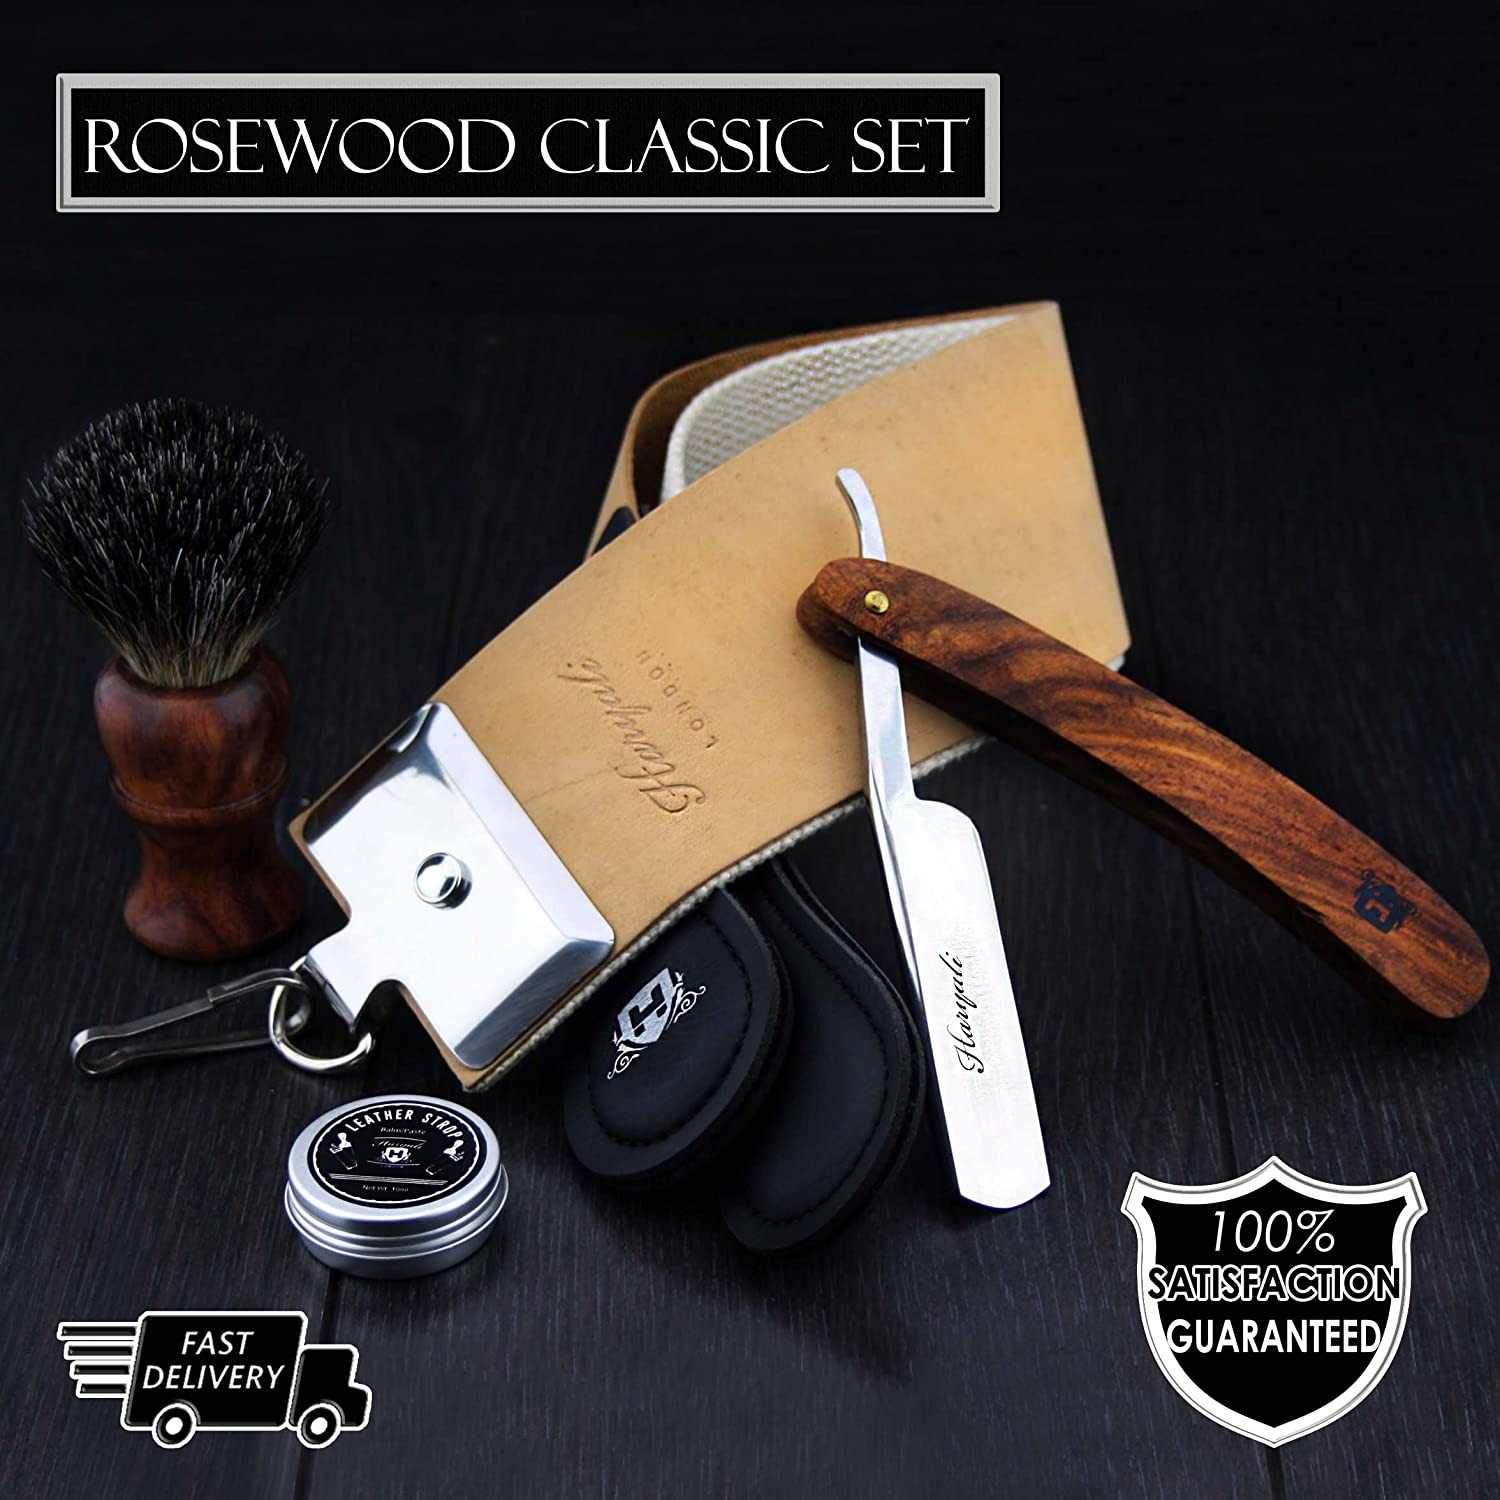 NEW Haryali Hand Assembled Classic Collection Straight Cut Throat Wooden Shaving Razor Wooden Black Badger Hair Shaving Brush Brown Leather Strop & DOVO Honing Paste. by Haryali London